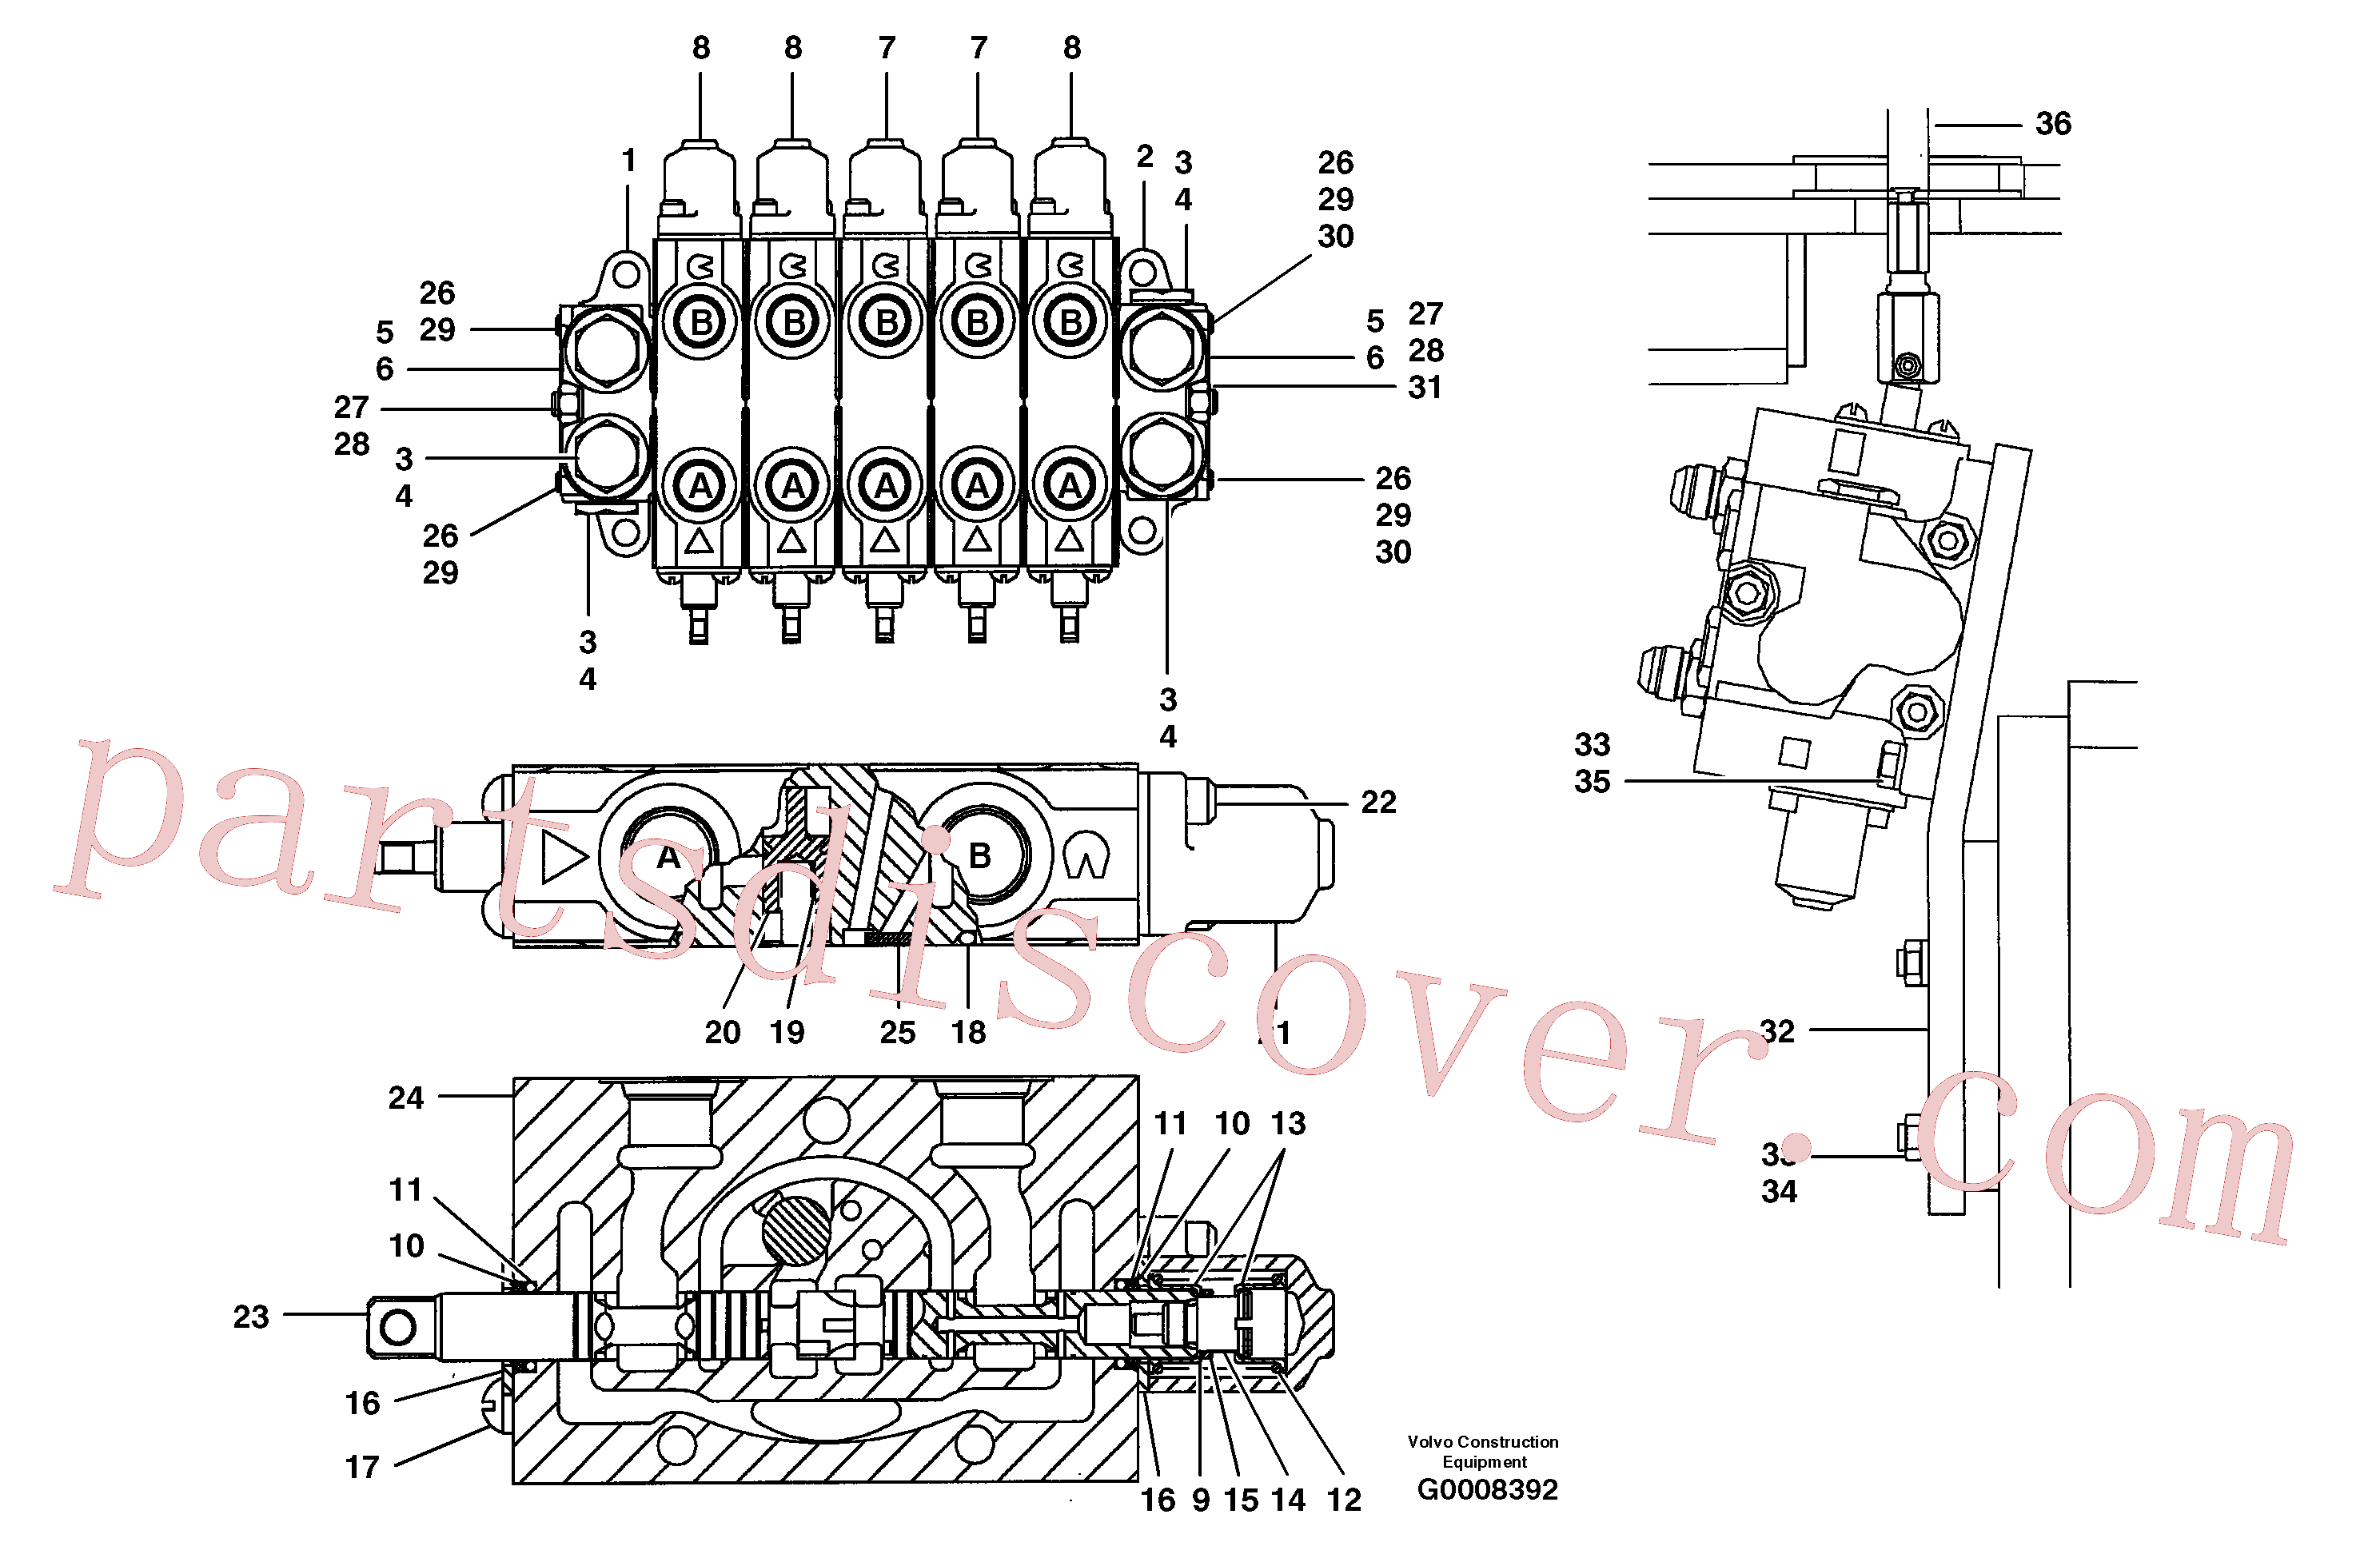 CH30A-06ZI for Volvo Auxiliary manifold valve - 5 bank(G0008392 assembly)